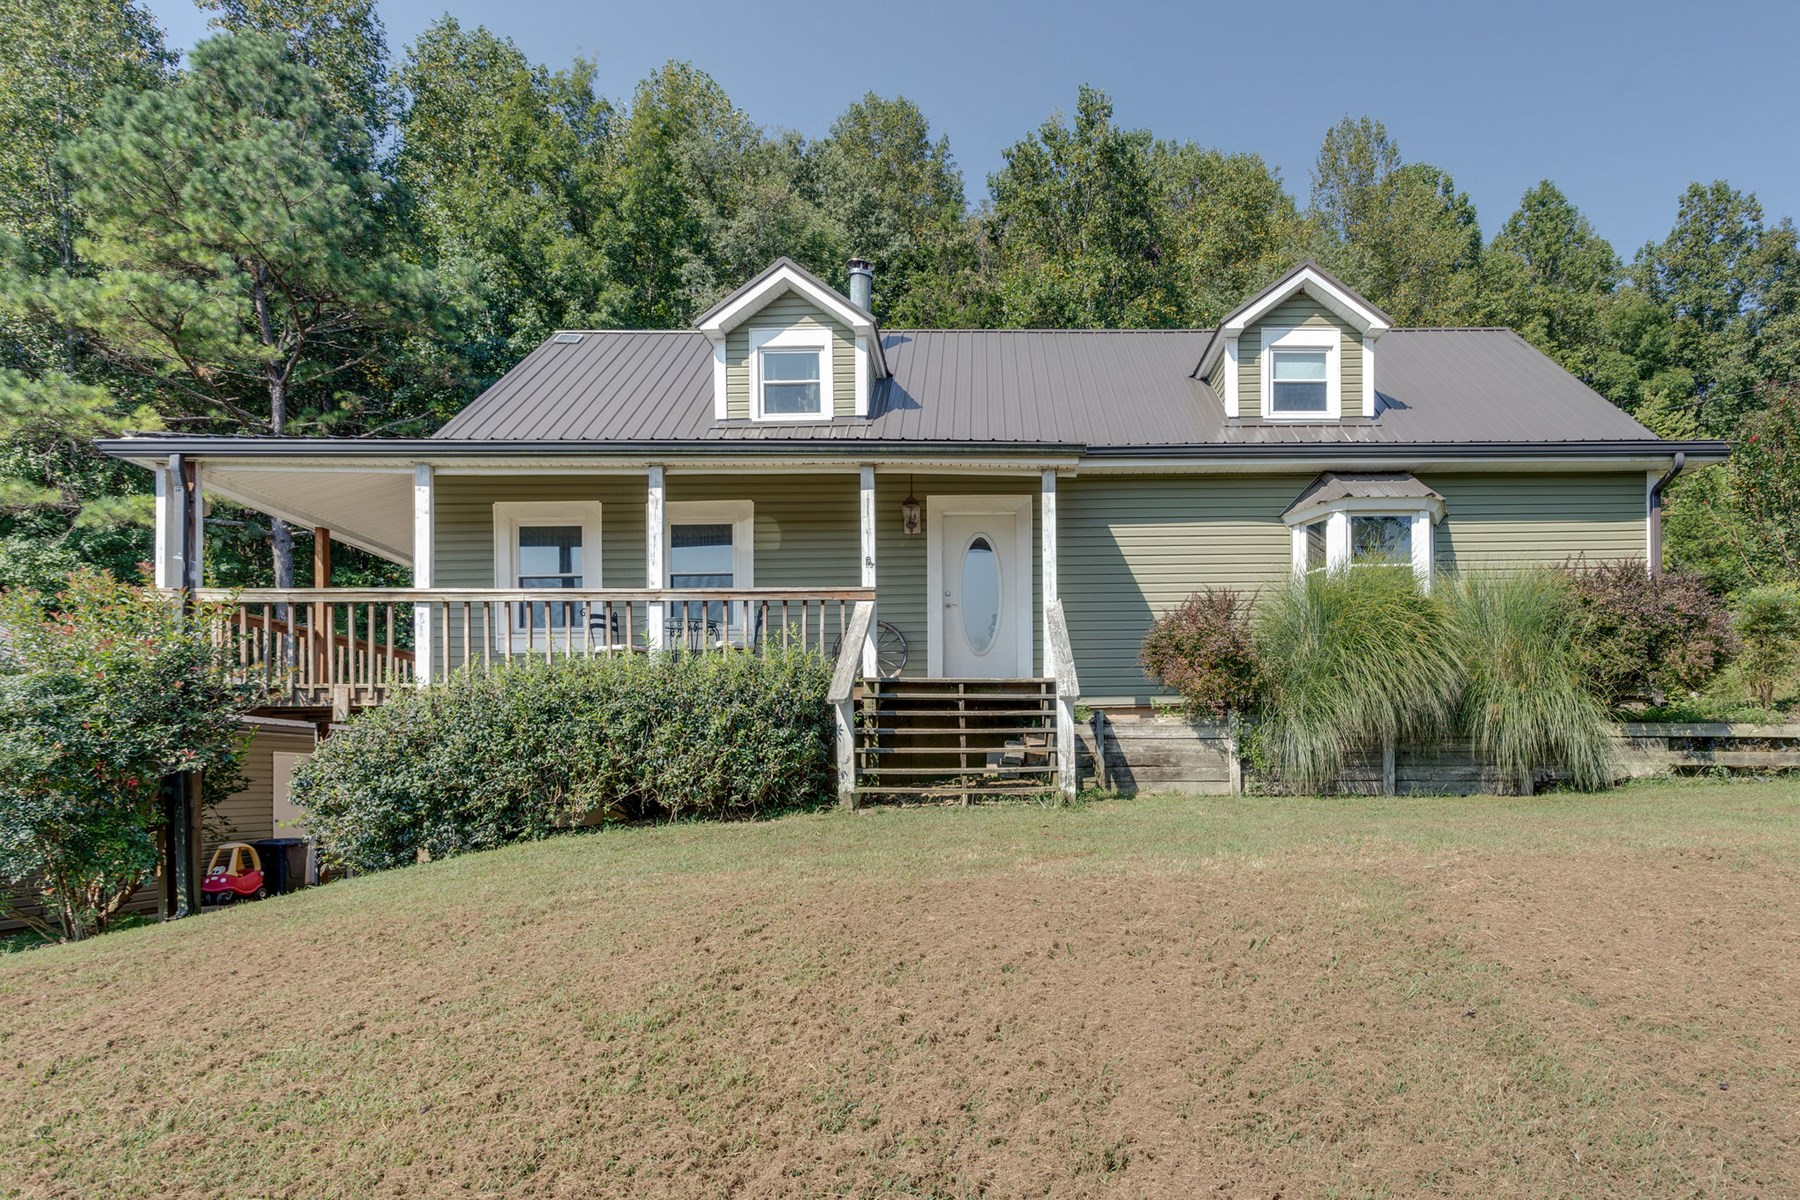 Cape Cod Home with Acreage in Wayne, County Tennessee